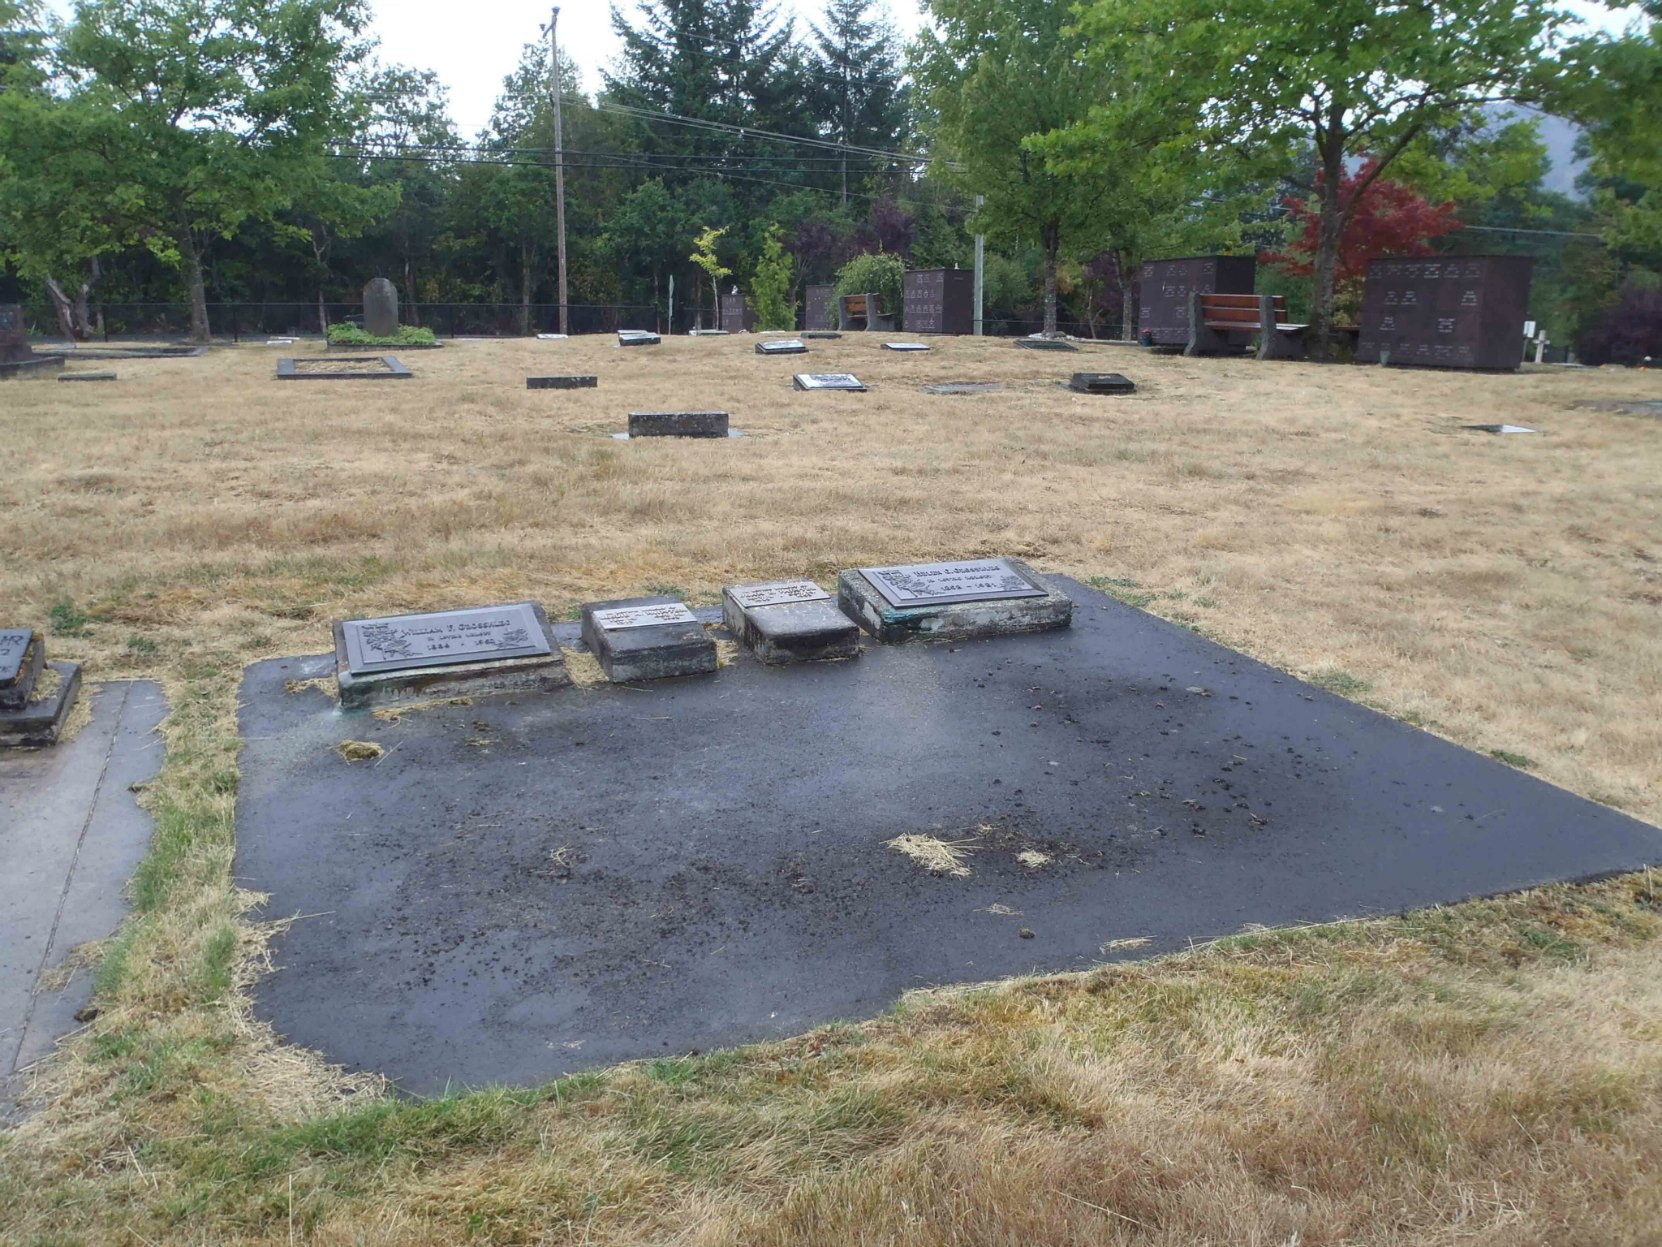 William Grosskleg family grave, Mountain View Cemetery, North Cowichan